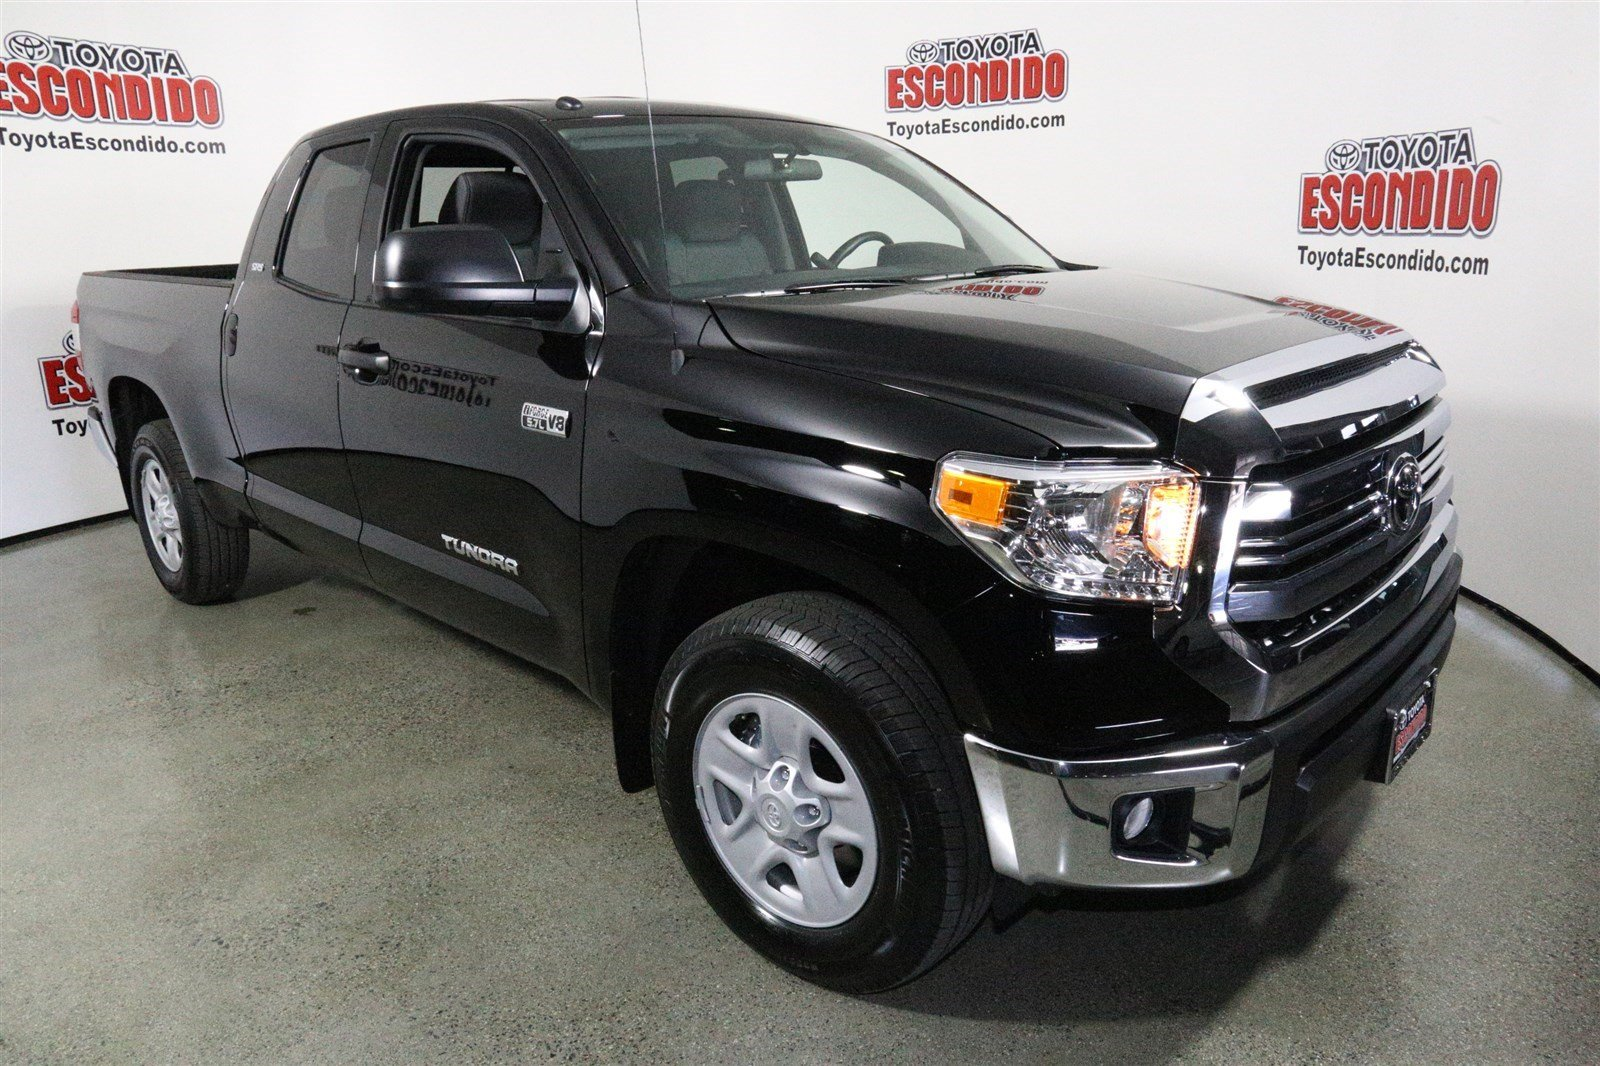 new 2017 toyota tundra 2wd sr5 double cab pickup in escondido 1014132 toyota of escondido. Black Bedroom Furniture Sets. Home Design Ideas